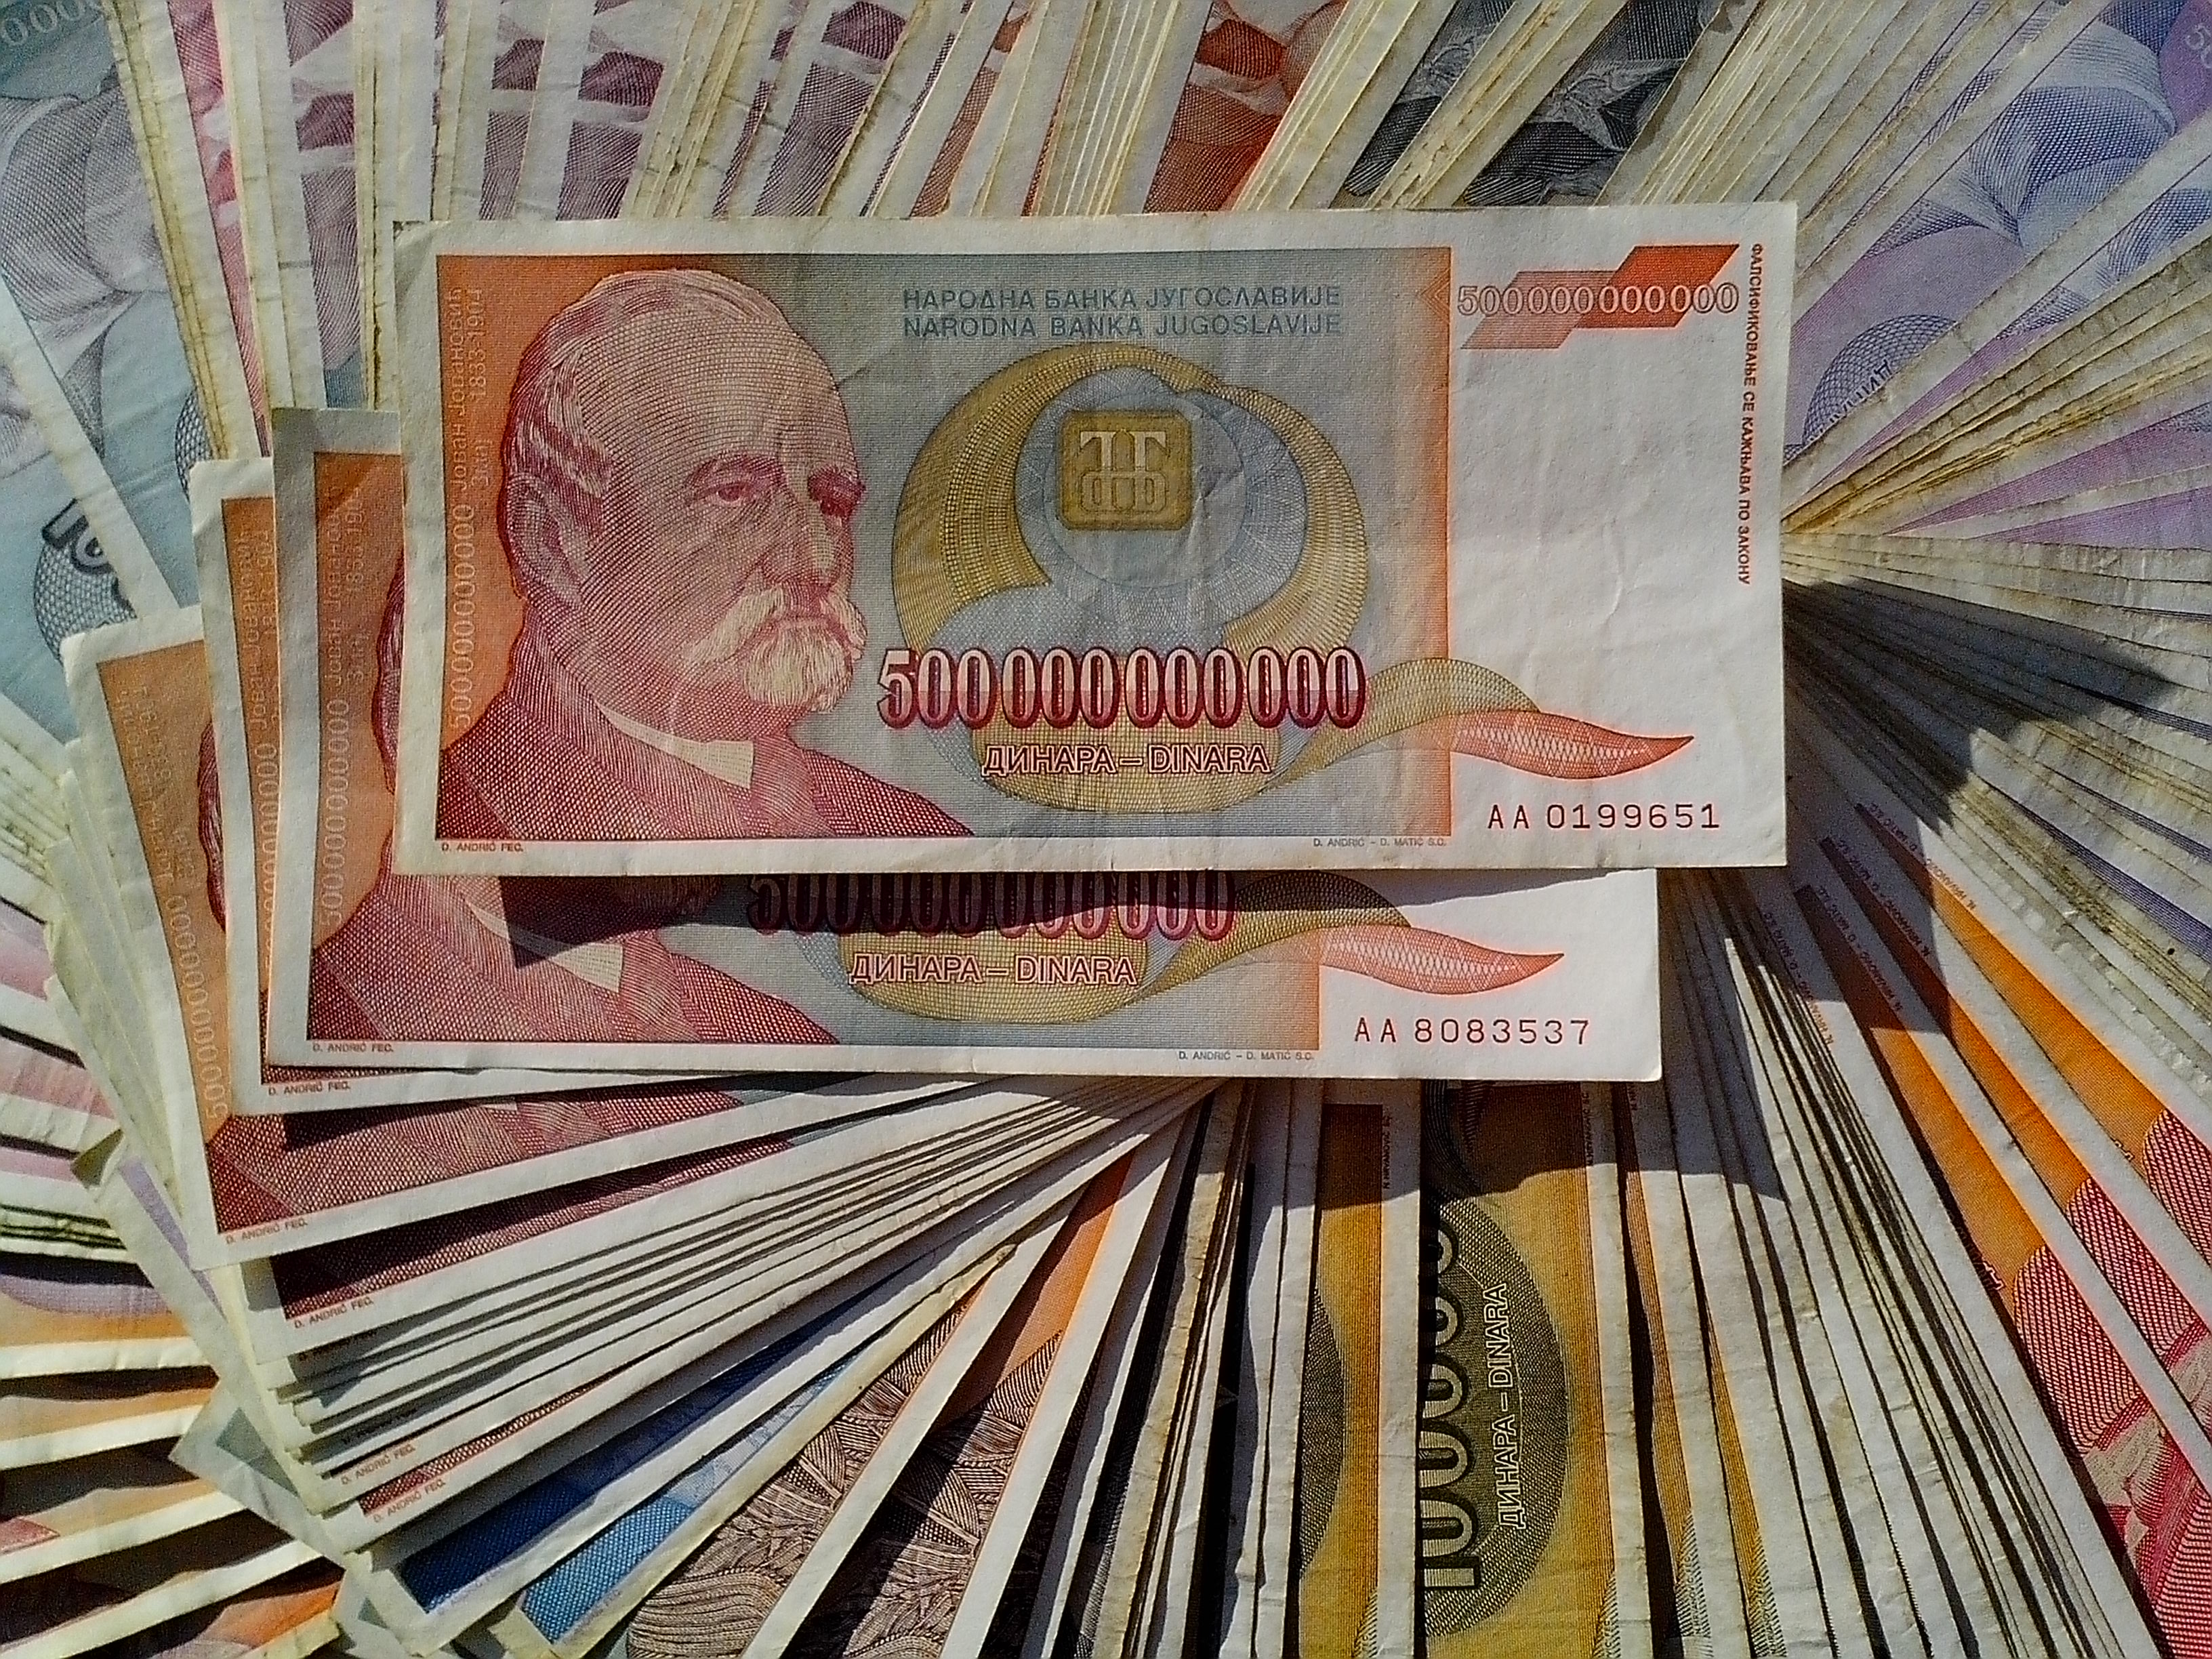 Free photograph; great, inflation, 500000000000, banknotes, cash, money, bills, currency